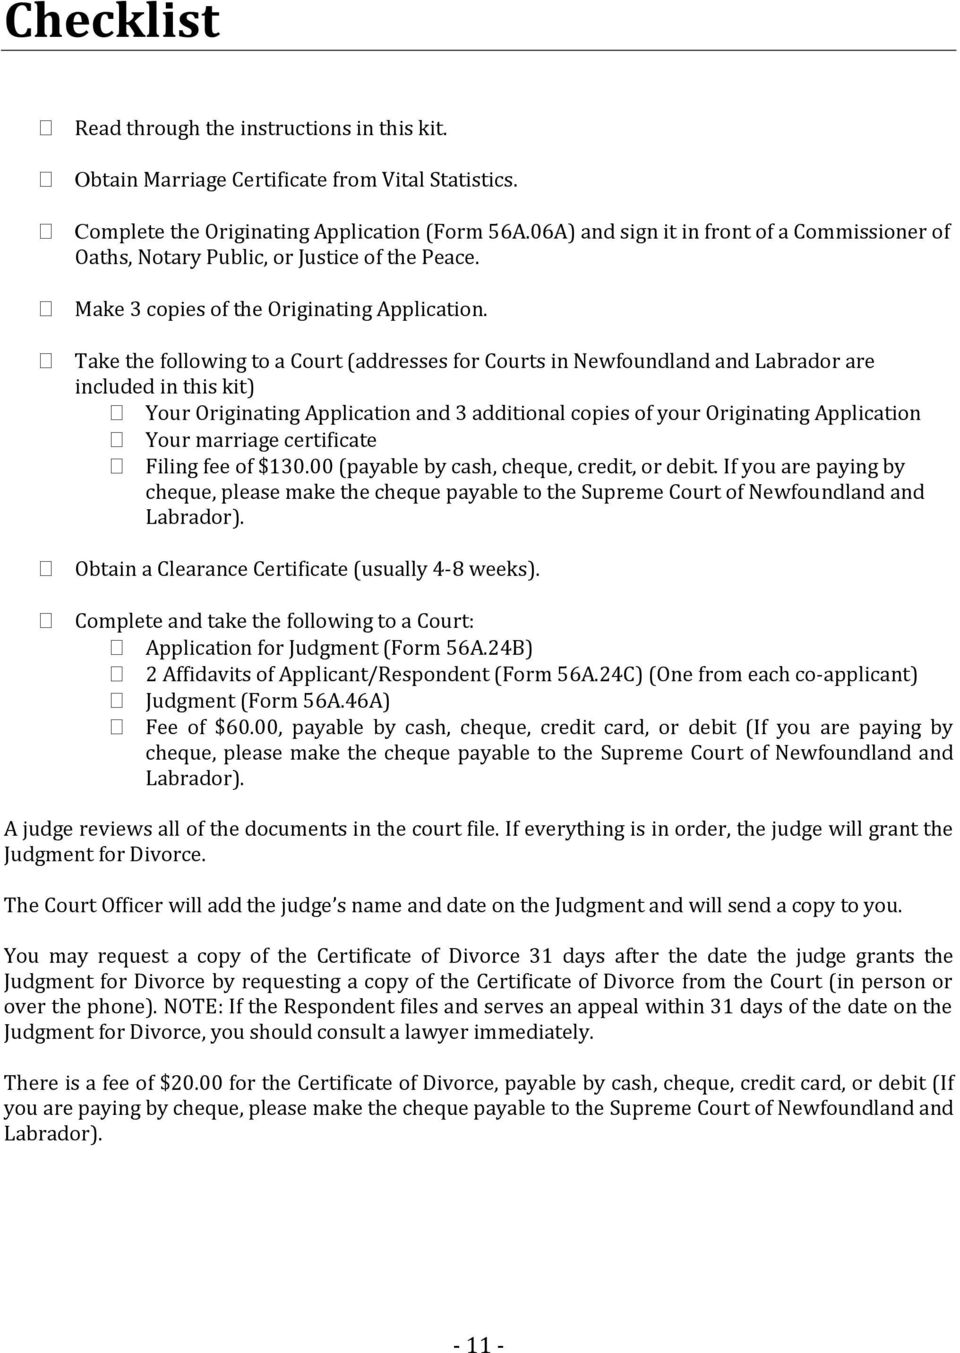 Joint or co applicant uncontested divorce self help kit pdf take the following to a court addresses for courts in newfoundland and labrador are included solutioingenieria Choice Image